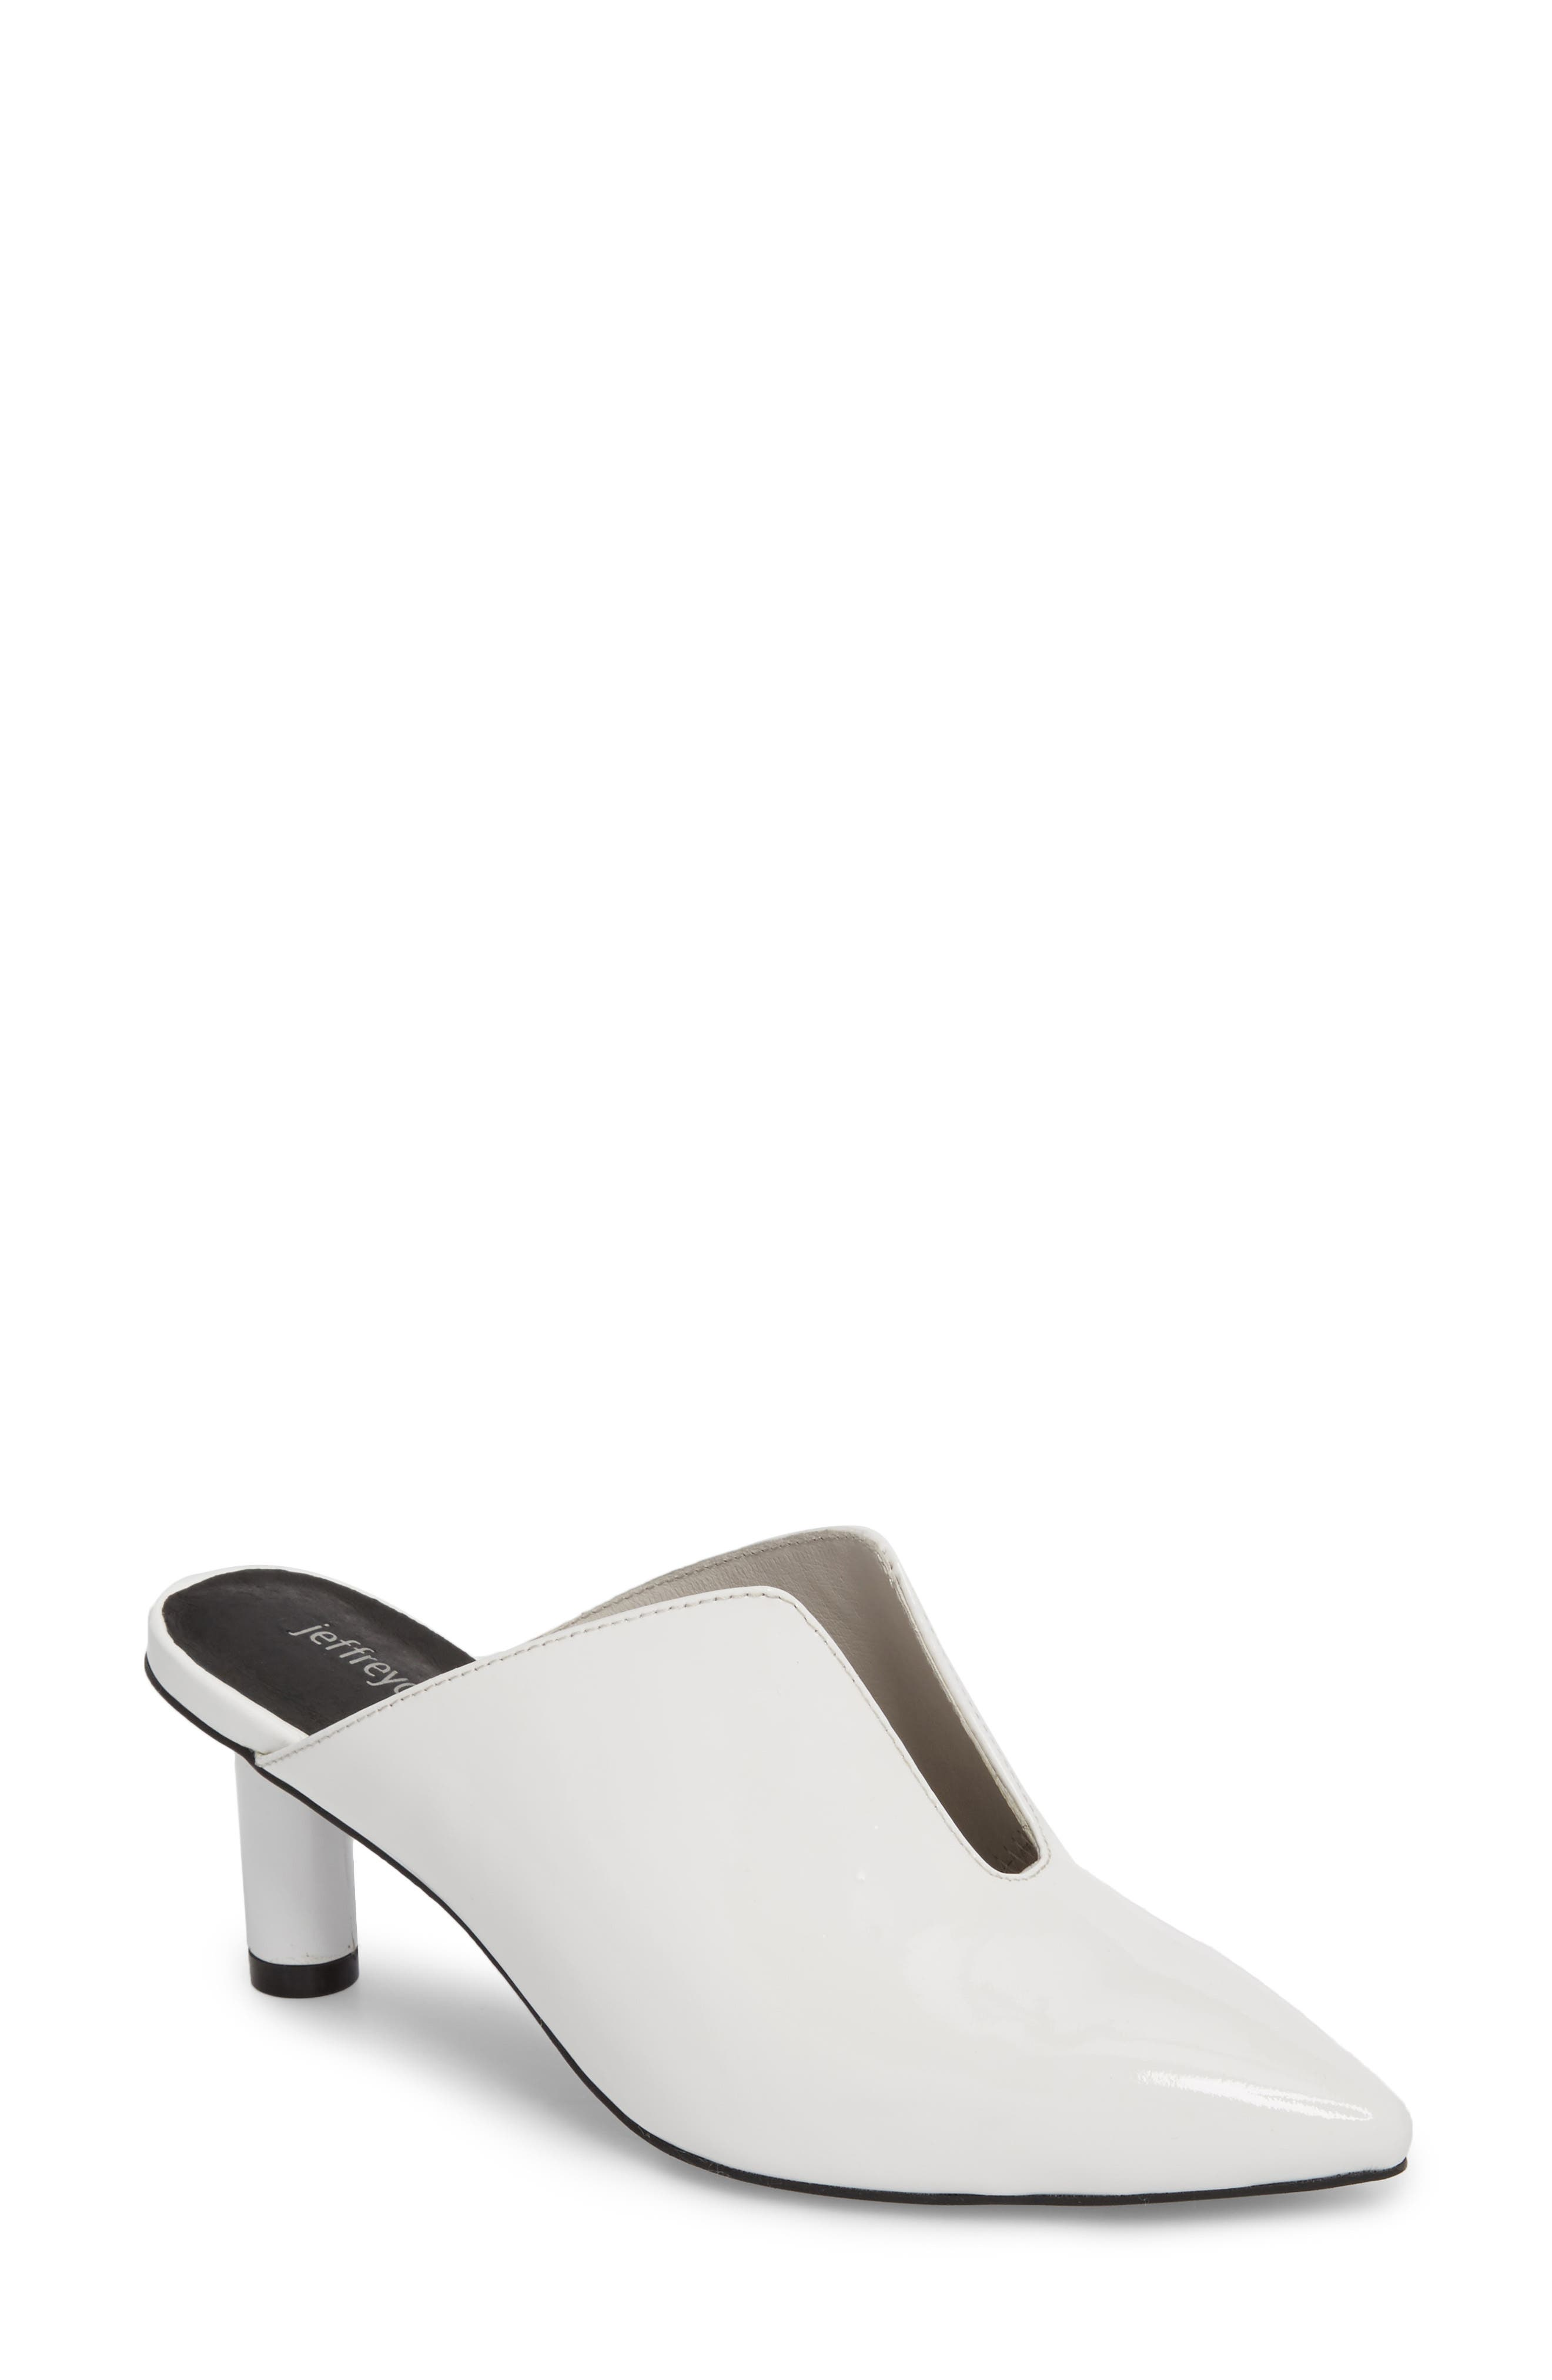 Saltaire Pointy Toe Mule,                             Main thumbnail 1, color,                             White Patent Leather